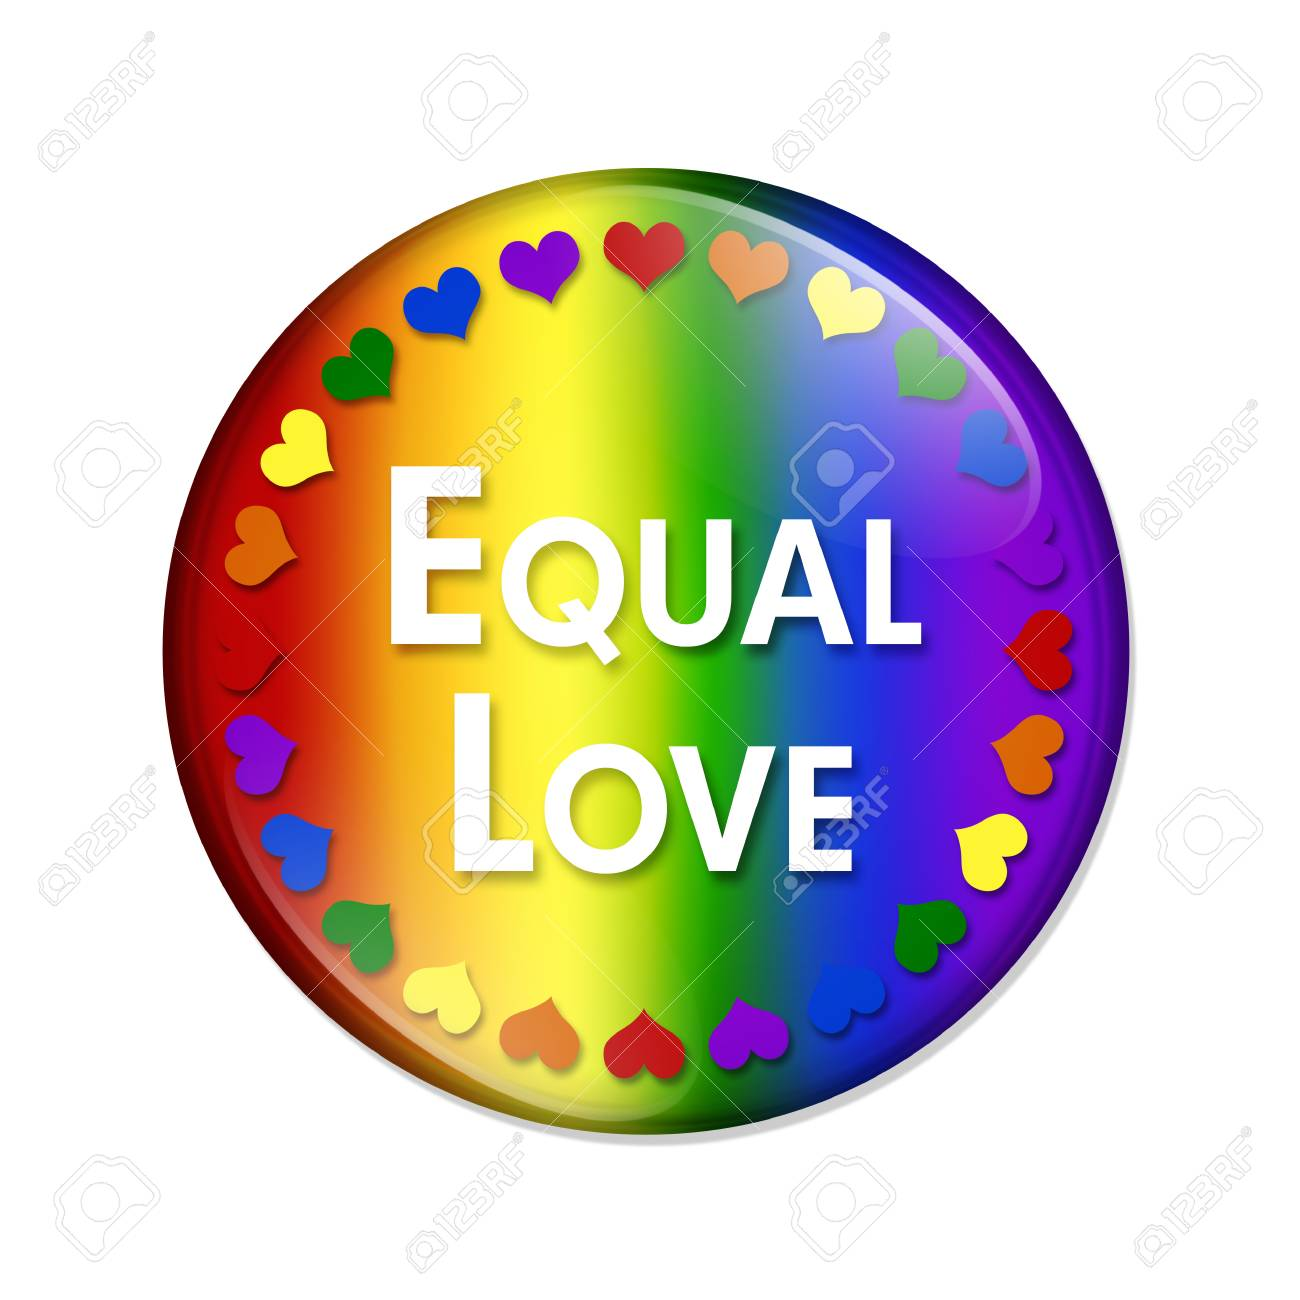 Lgbt Equal Love Button A Multicolored Button With Word Equal Love And Lgbt Pride Colored